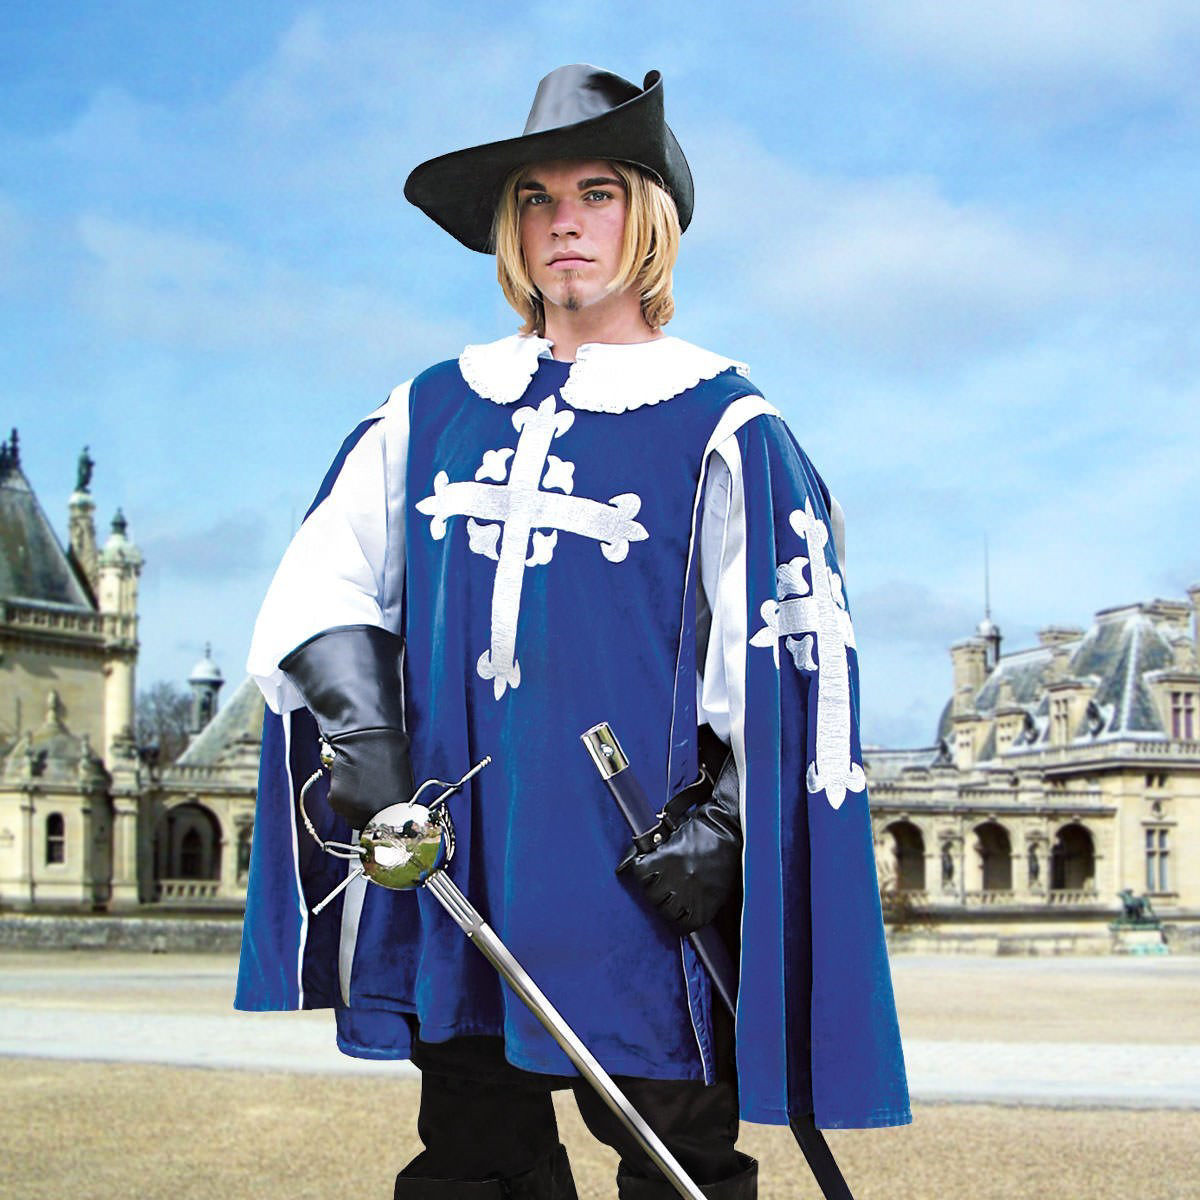 Blue cotton velvet Musketeer Tabard has matching satin lining and embroidered silver crosses with fleur-de-lis on the front and sides